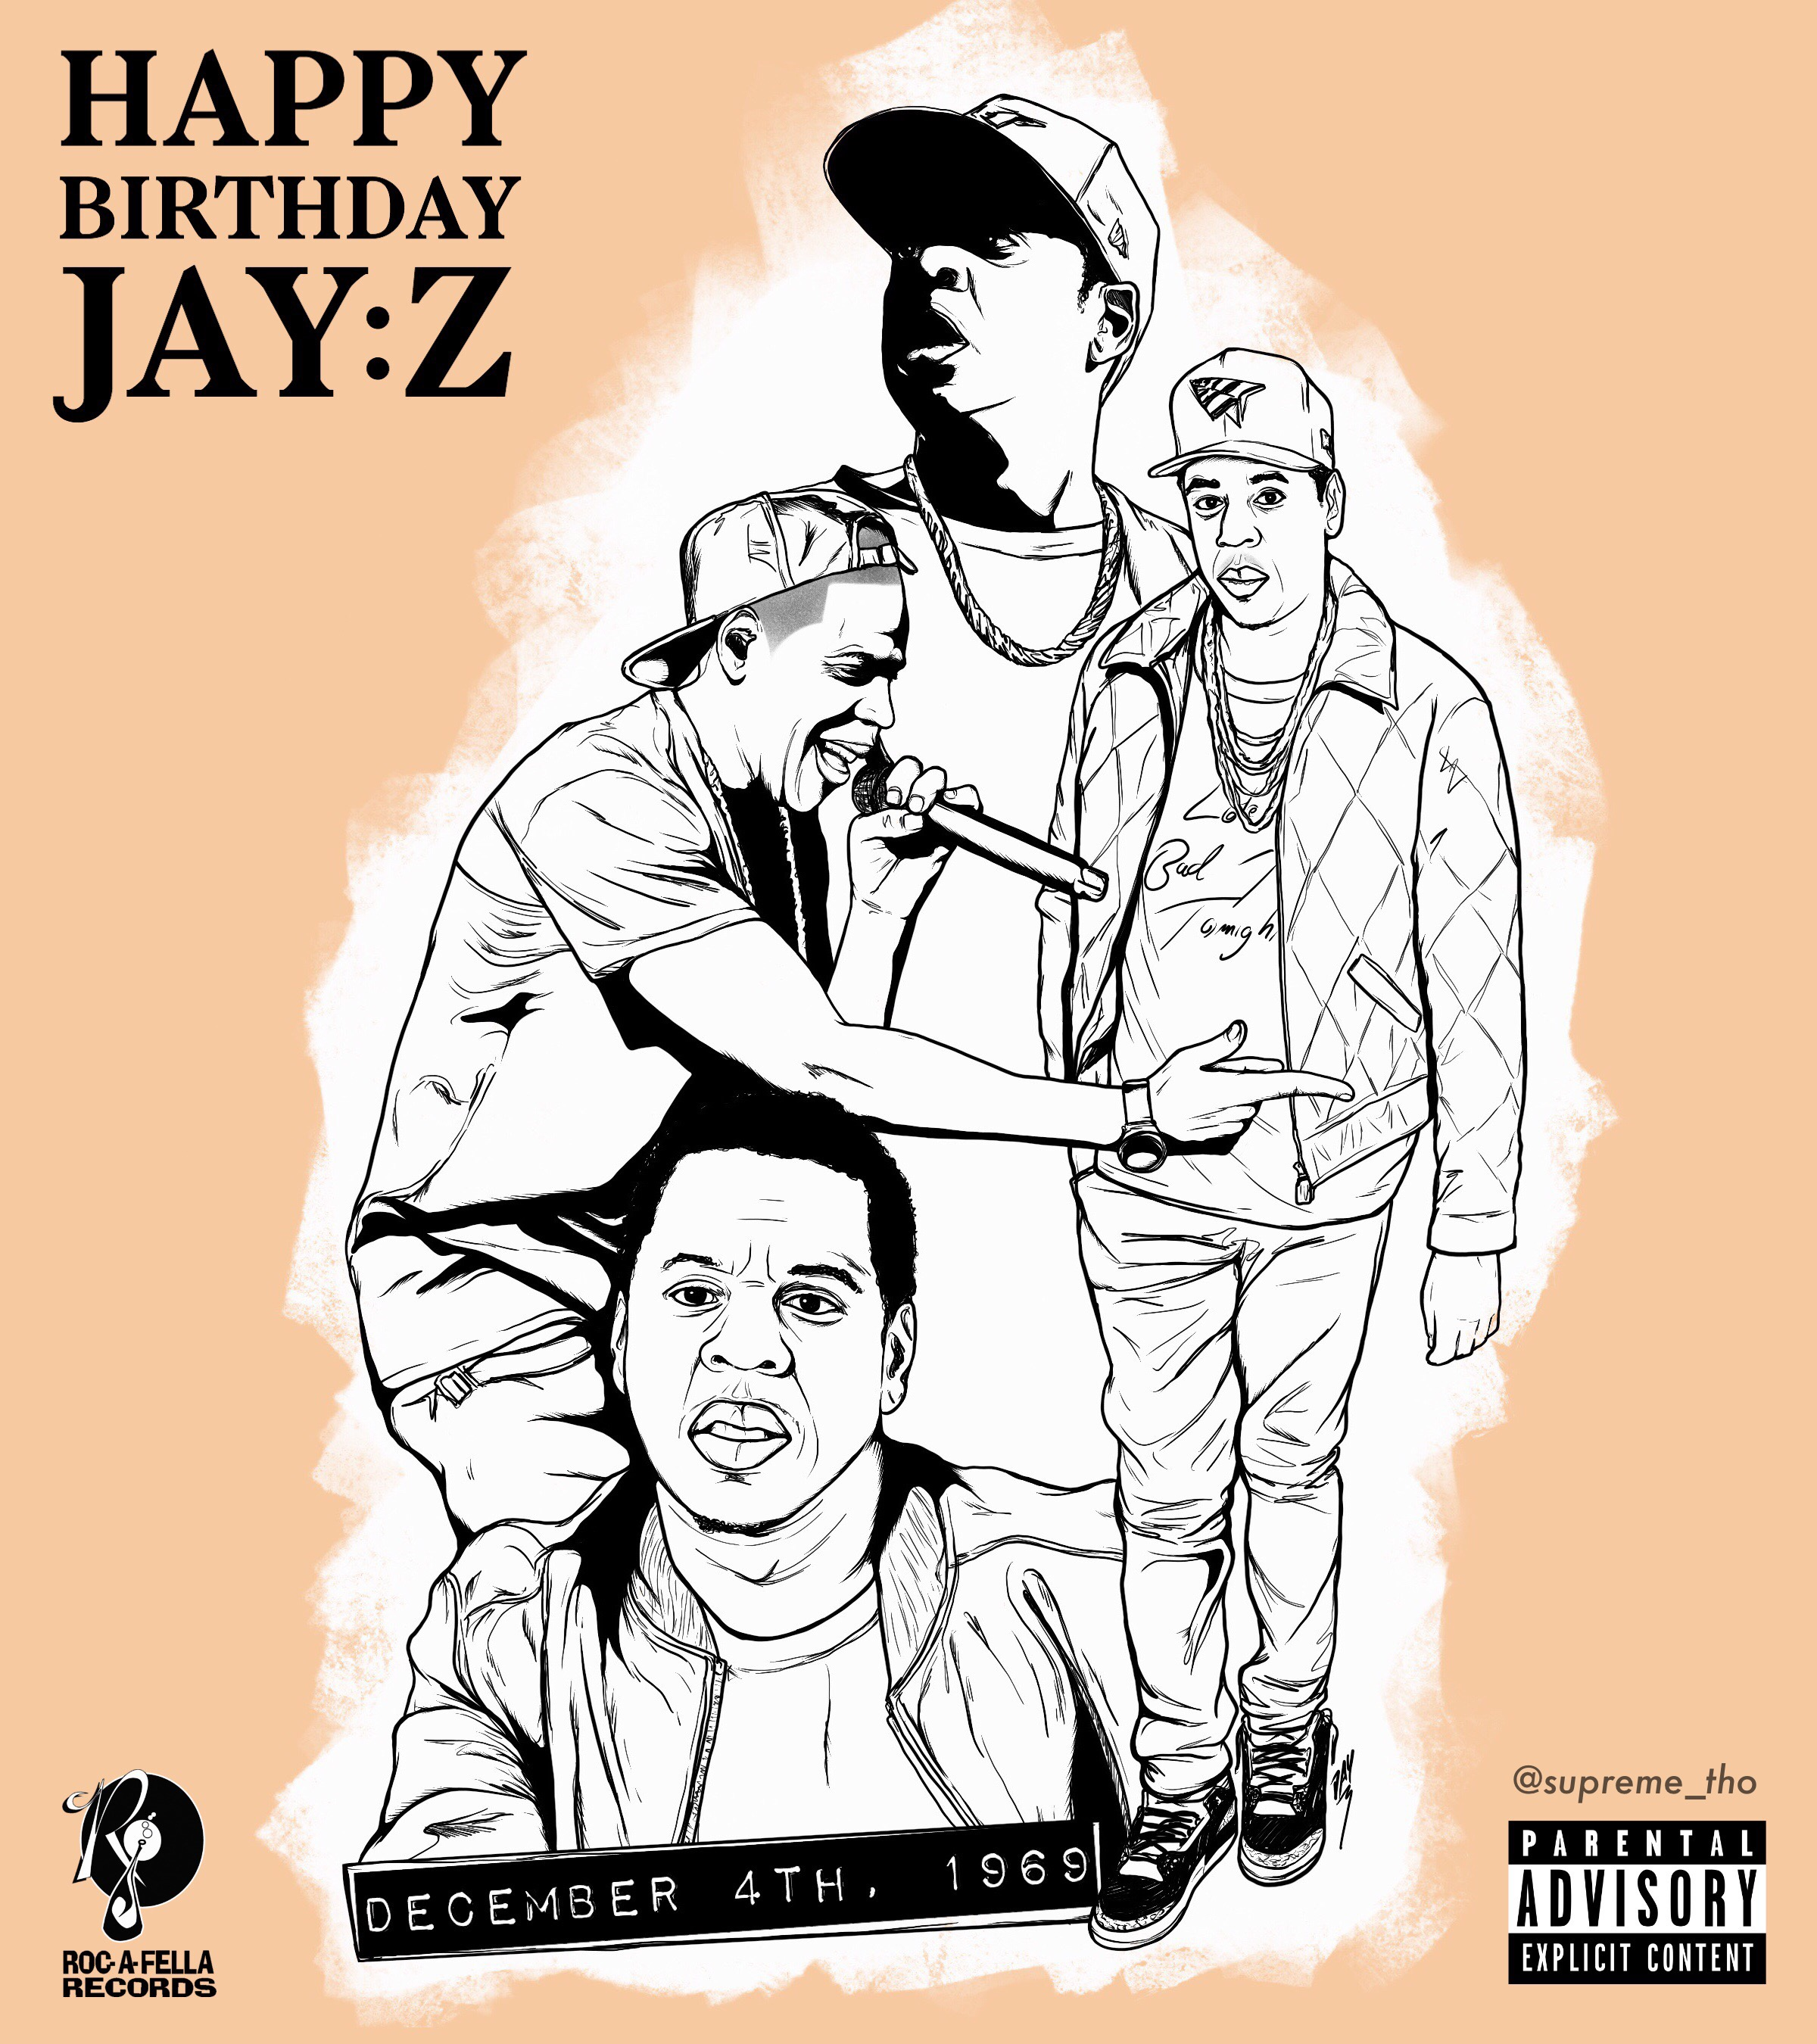 HAPPY BIRTHDAY HOV